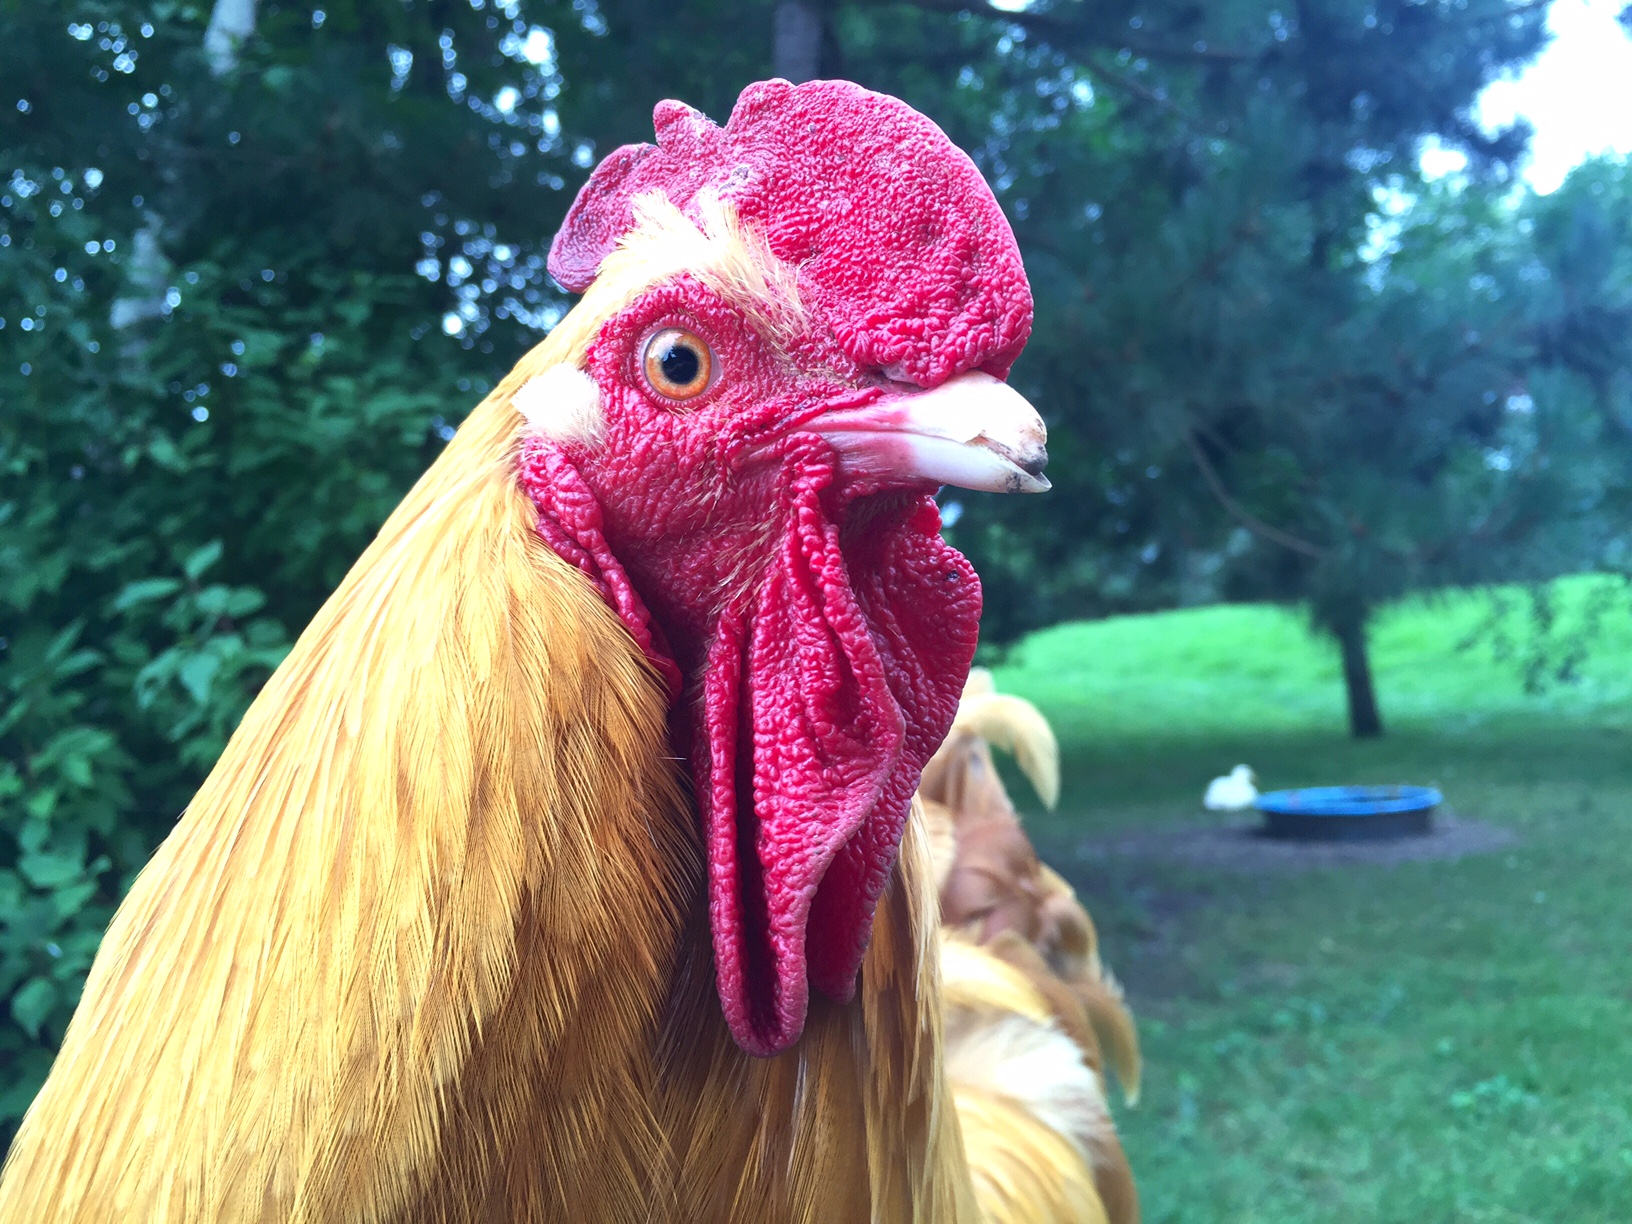 Bolivar rooster, Bolivar rooster, Super Gluing a Broken Chicken Beak, or...How I Became a Crazy Chicken Lady | Whole-Fed Homestead